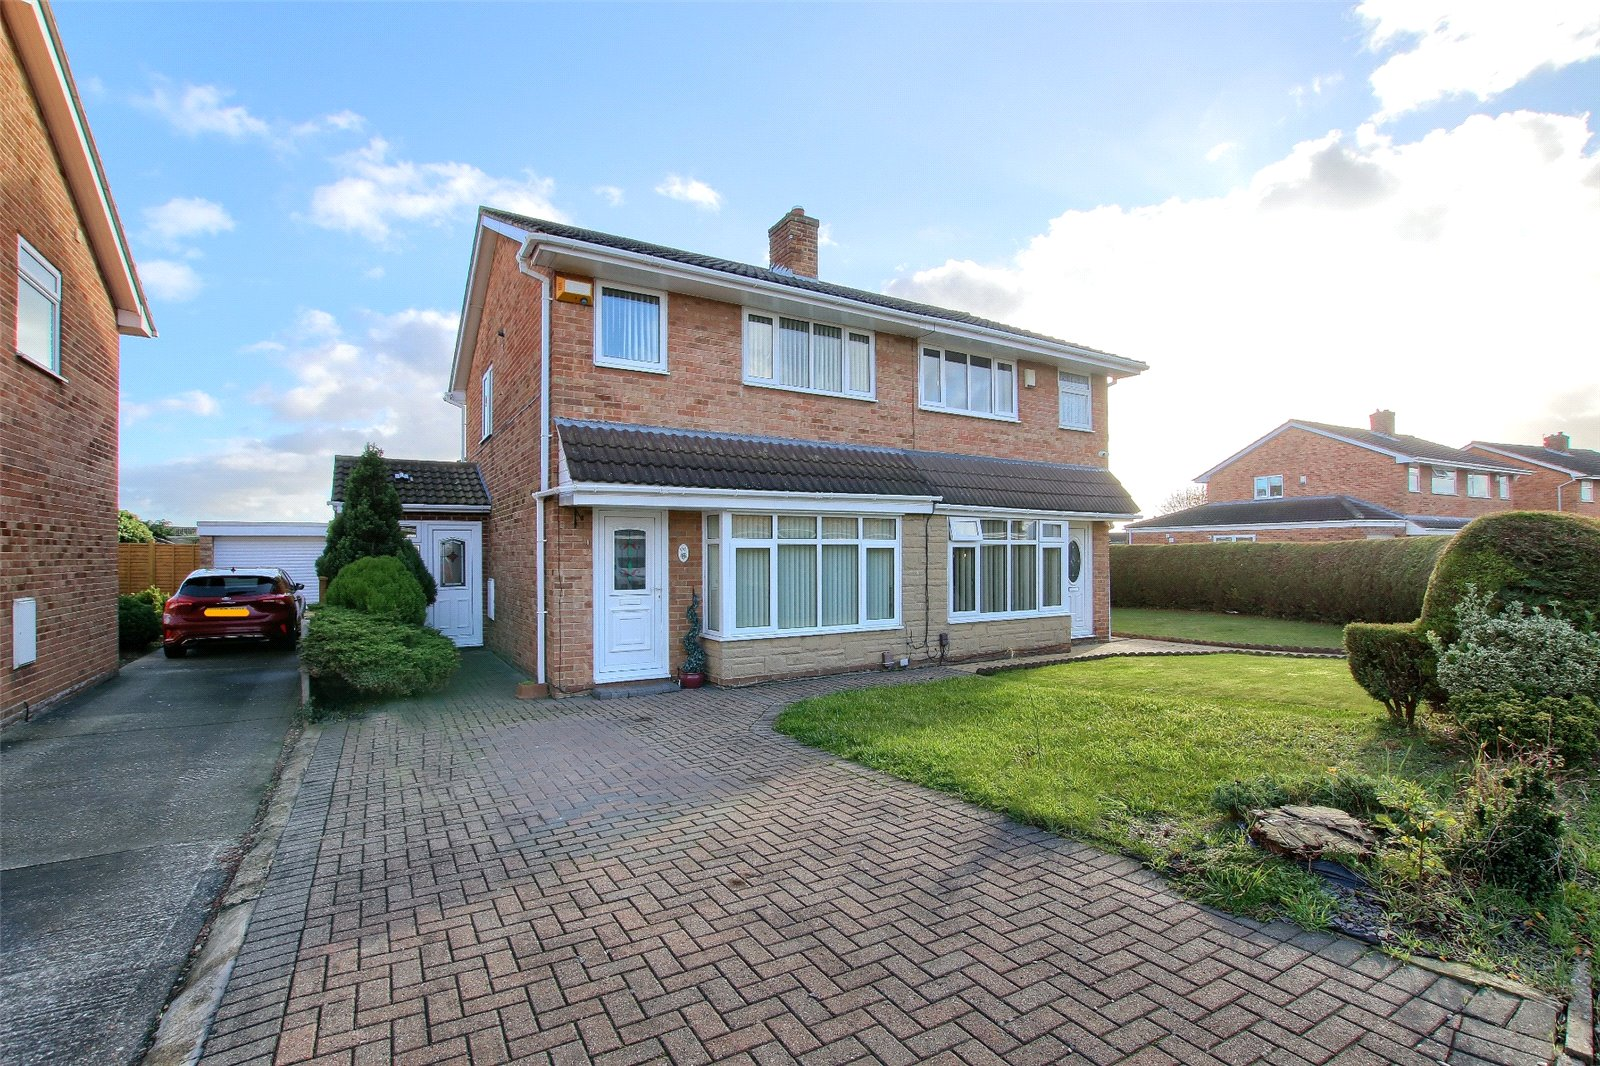 3 bed house for sale in Topcliffe Road, Thornaby  - Property Image 1